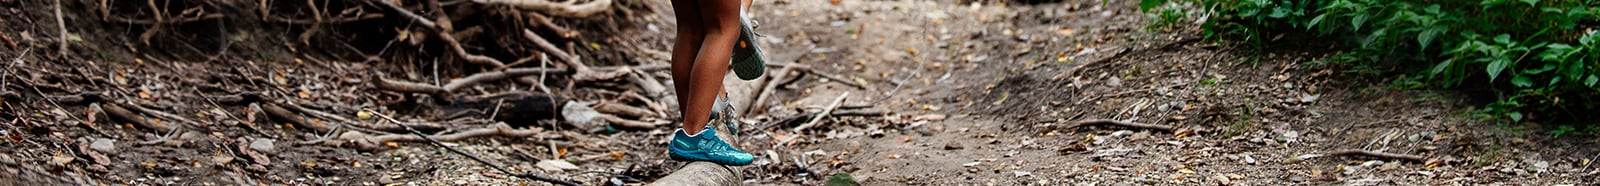 Two kids on a hike, balancing on a log wearing Merrell hiking shoes.